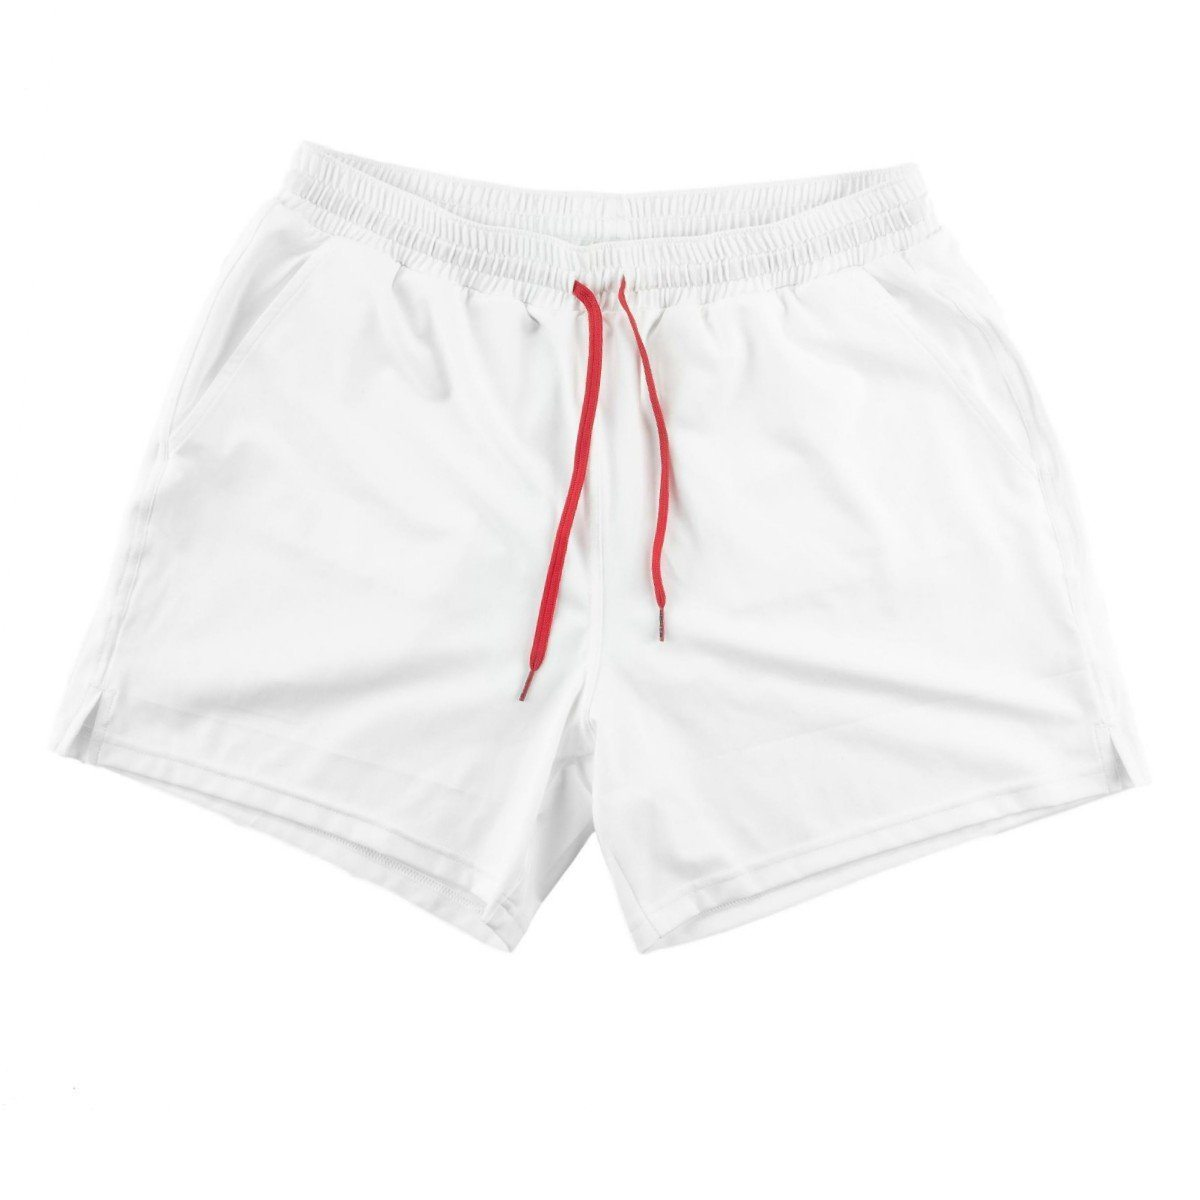 Swim Trunks - White